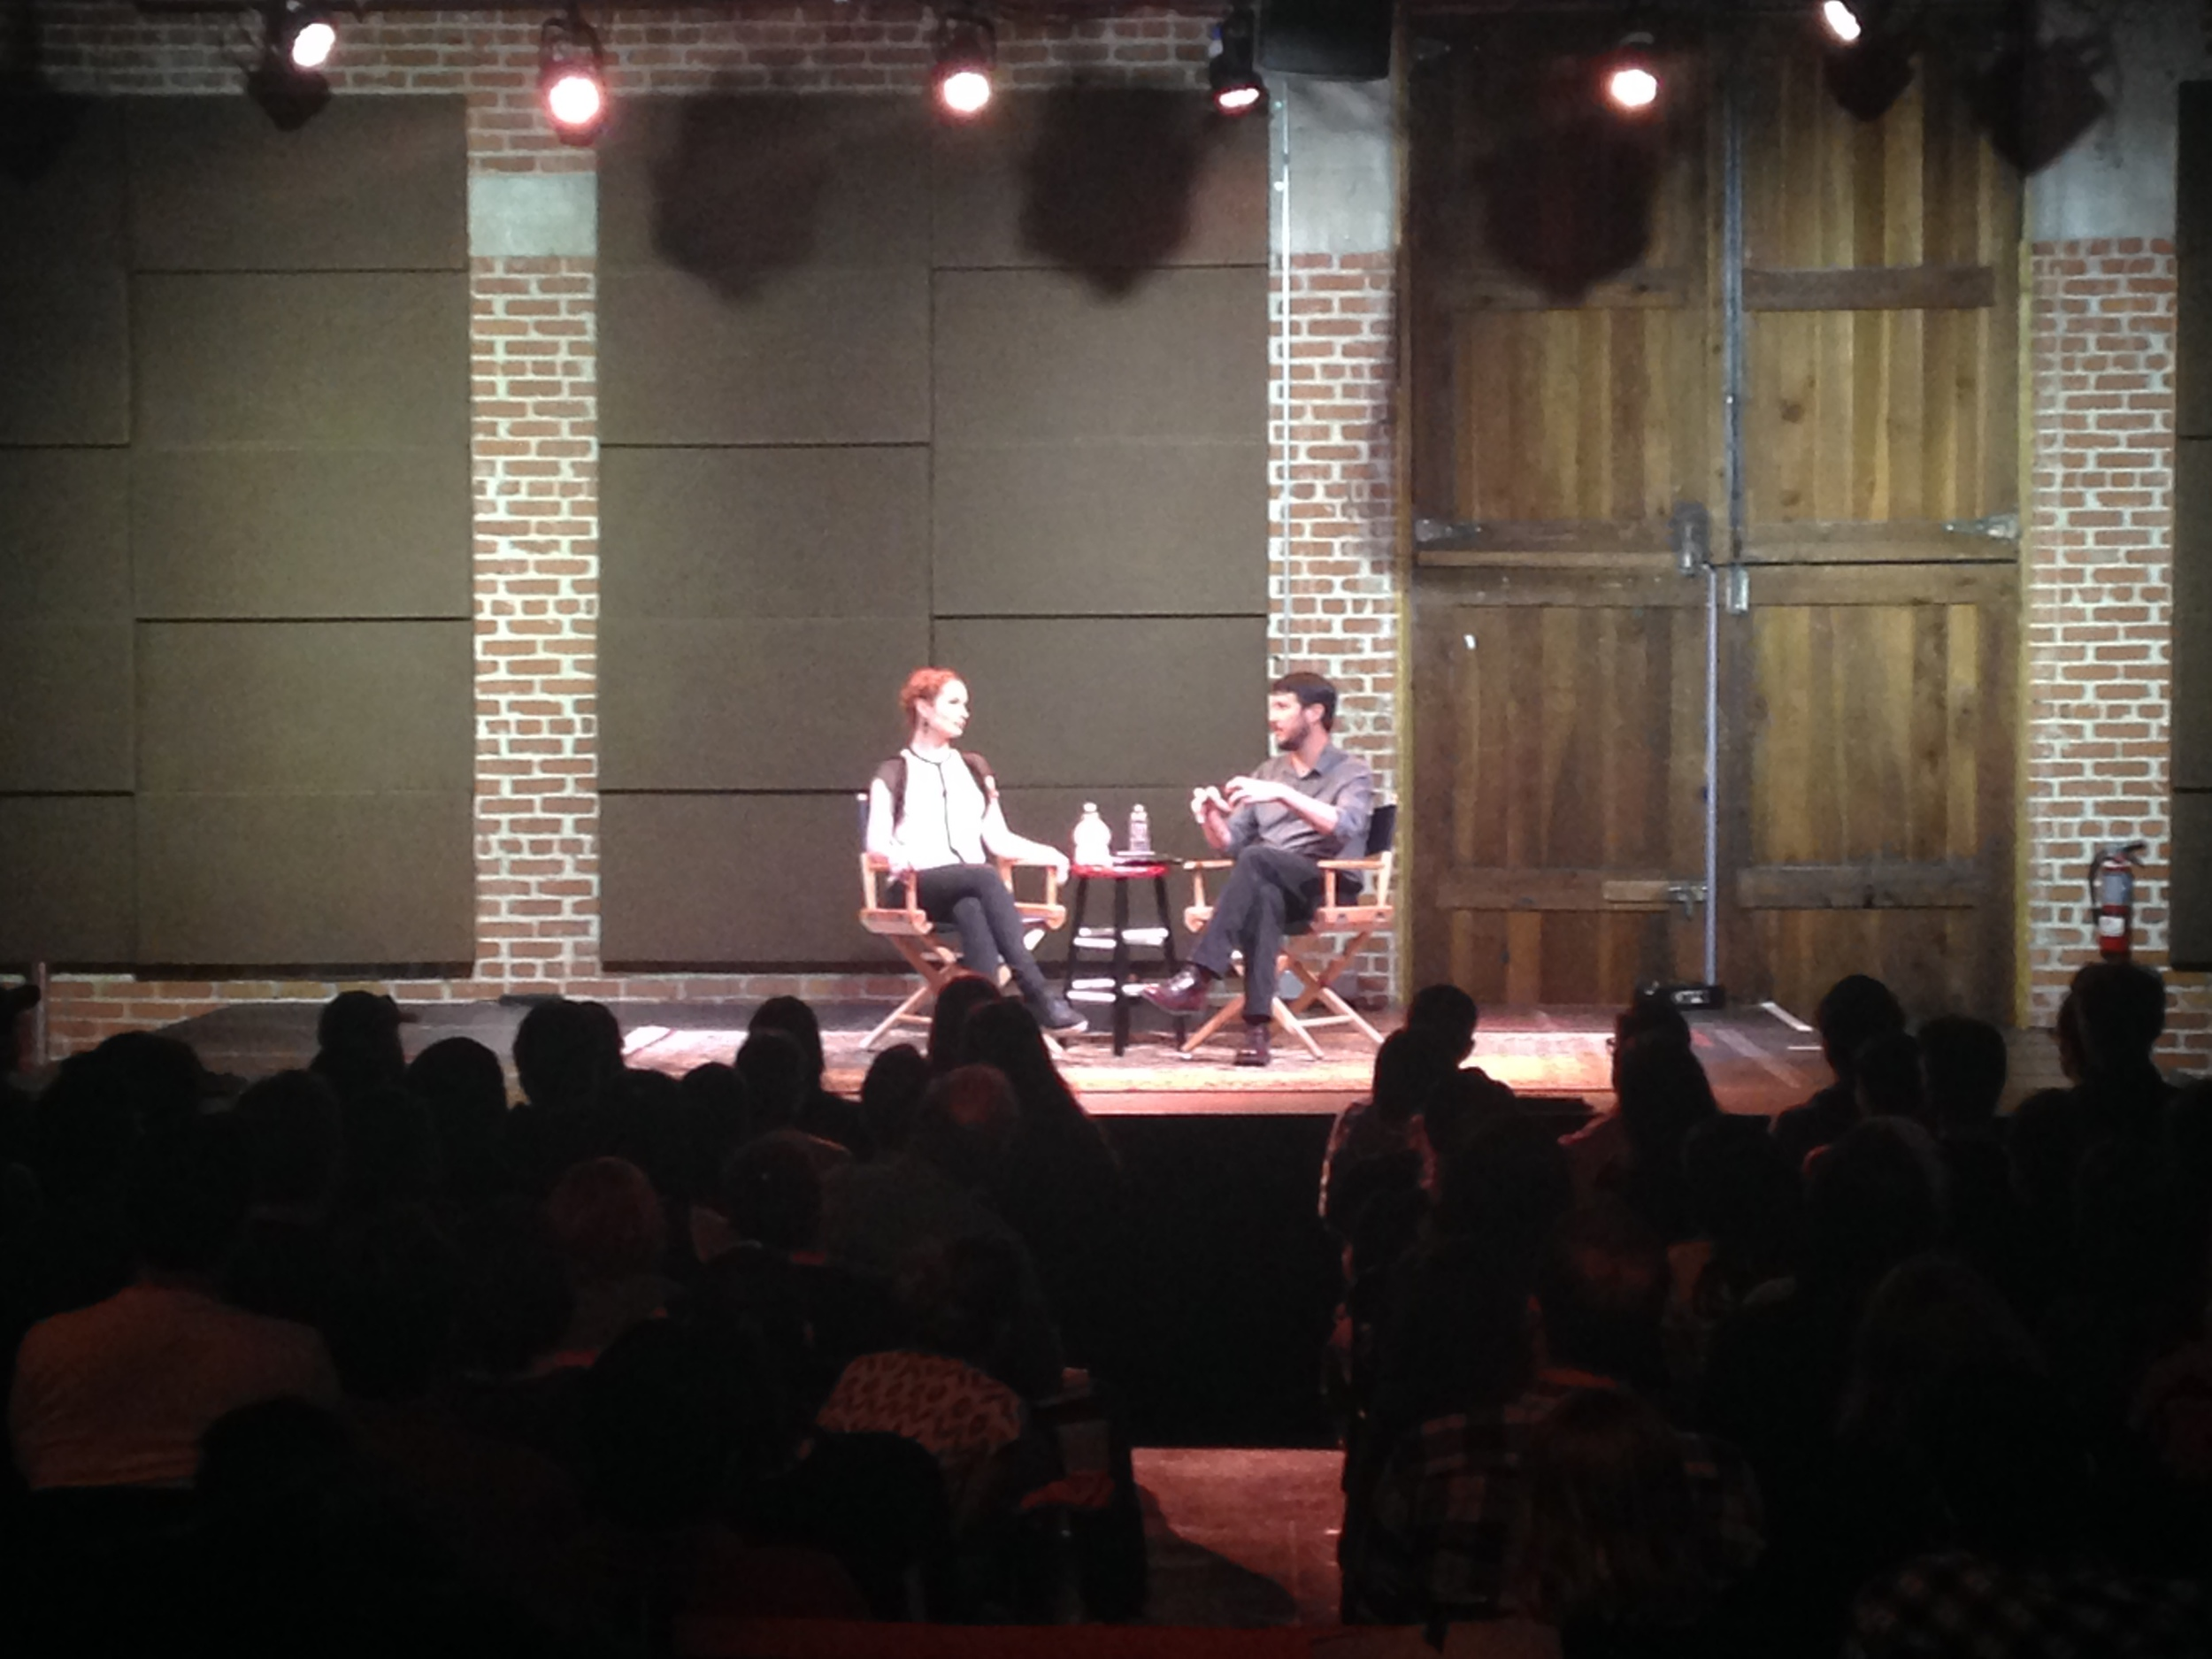 Wil Wheaton interviewing Felicia Day